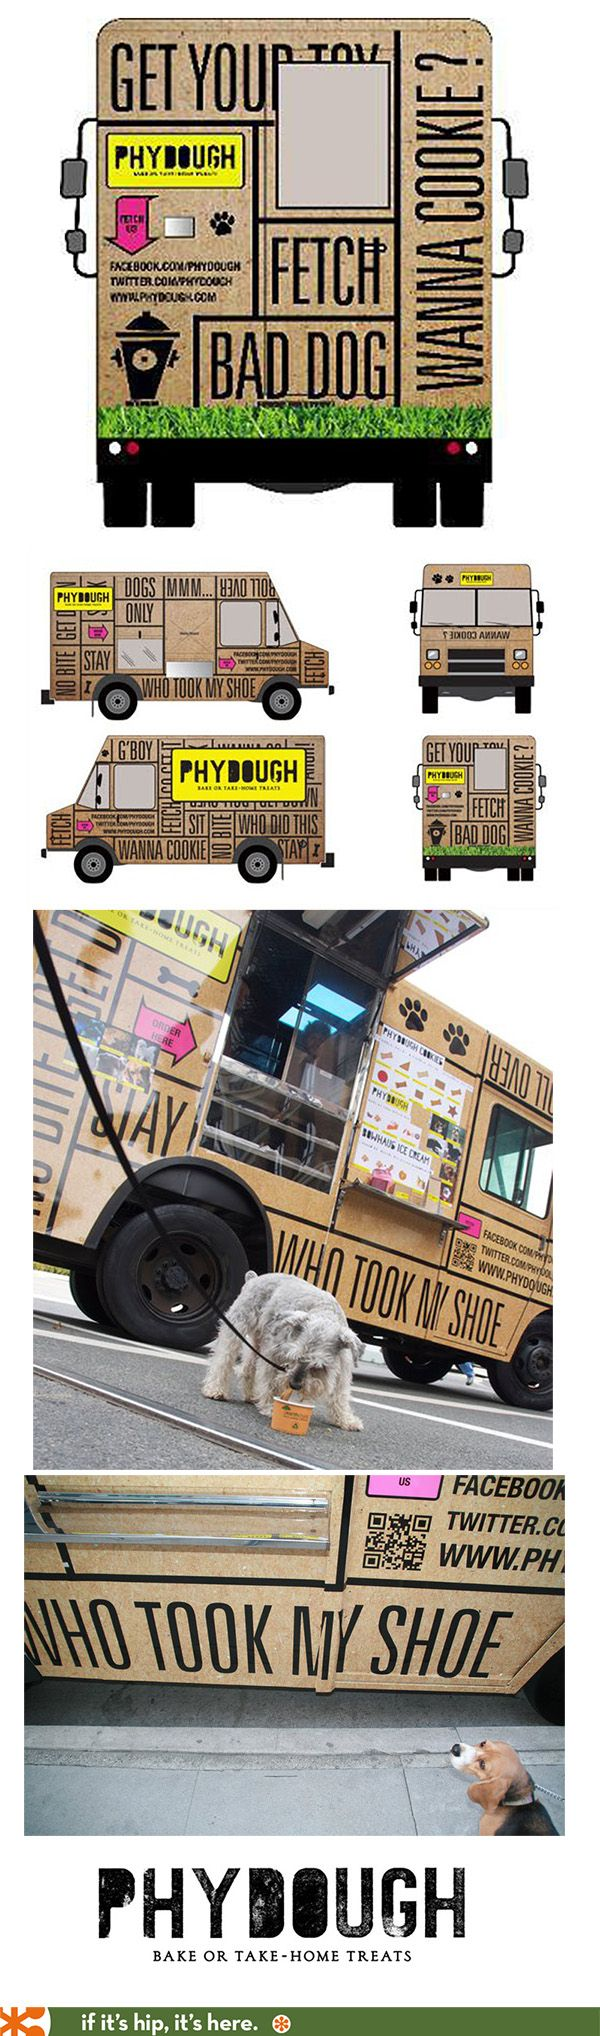 The Phydough Organic Food Truck For Dogs is beautifully wrapped in graphics by Coolhaus.